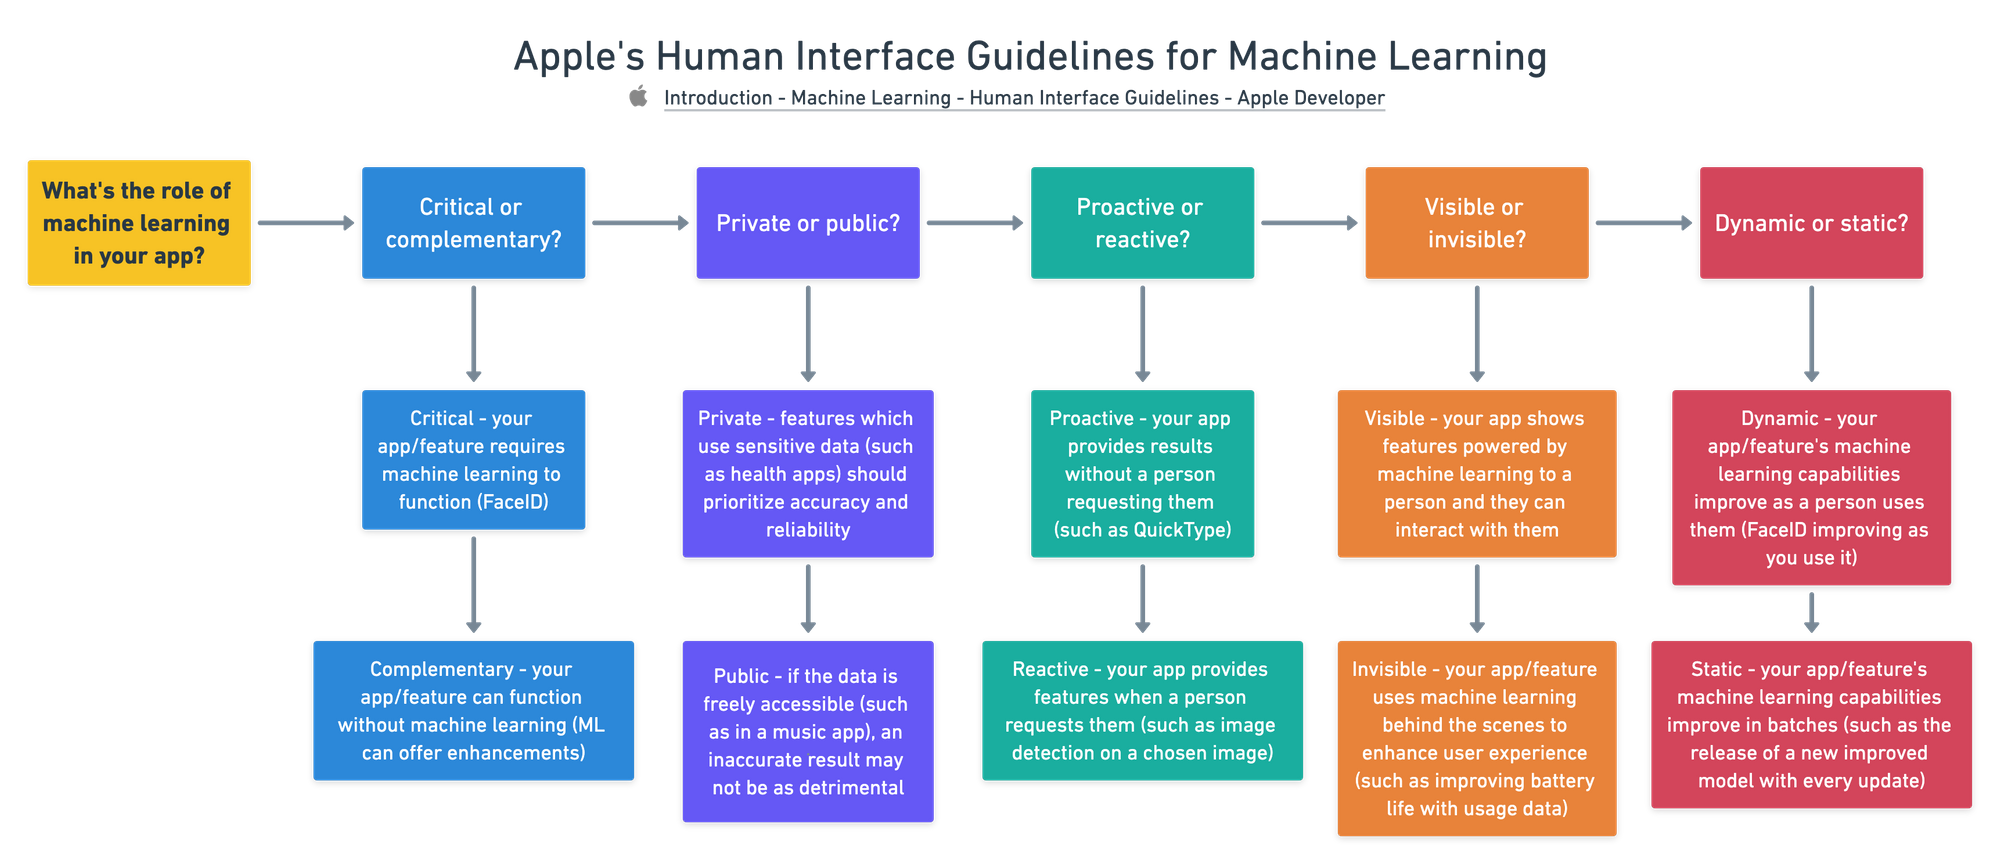 Apple's Human Interface Guidelines for Machine Learning (asking the question: what's the role of machine learning in your app?)